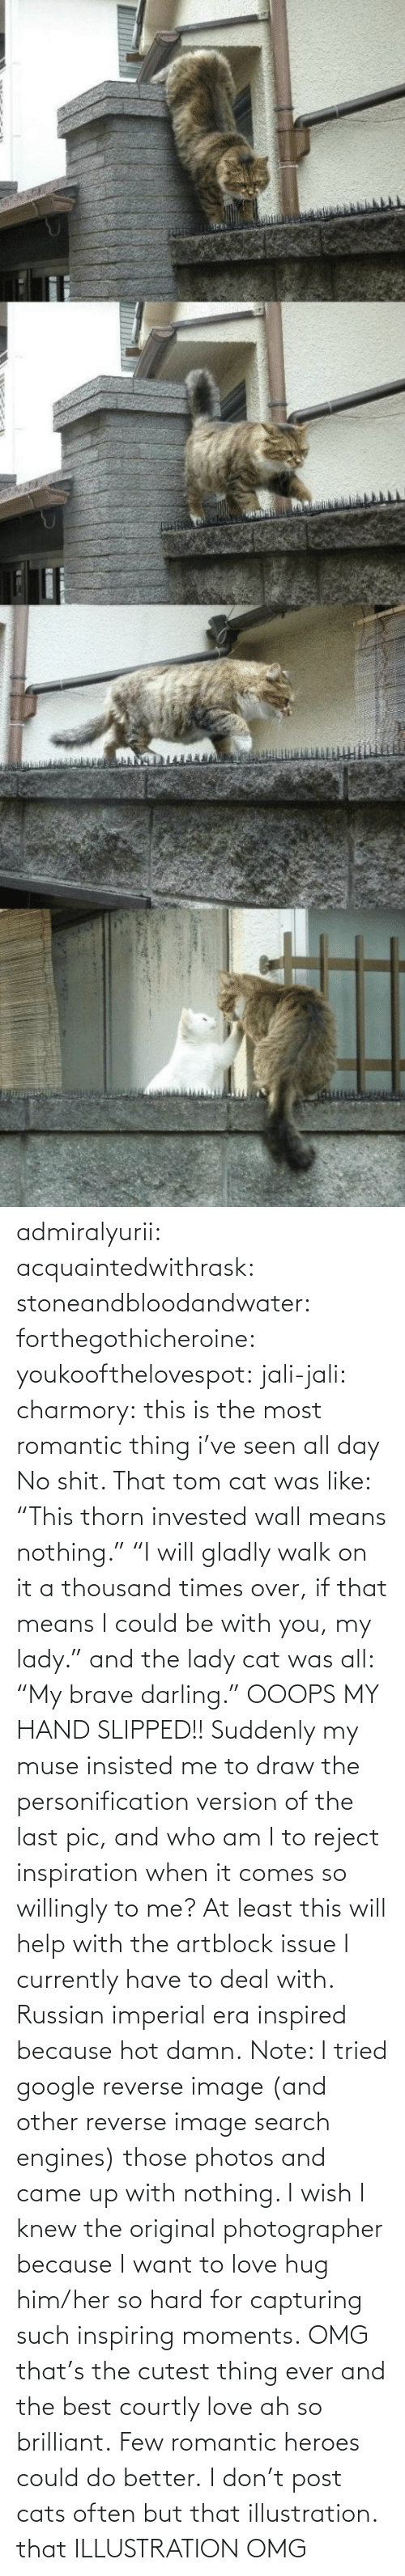 "times: admiralyurii: acquaintedwithrask:  stoneandbloodandwater:  forthegothicheroine:  youkoofthelovespot:  jali-jali:  charmory:  this is the most romantic thing i've seen all day  No shit. That tom cat was like: ""This thorn invested wall means nothing."" ""I will gladly walk on it a thousand times over, if that means I could be with you, my lady."" and the lady cat was all: ""My brave darling."" OOOPS MY HAND SLIPPED!!  Suddenly my muse insisted me to draw the personification version of the last pic, and who am I to reject inspiration when it comes so willingly to me? At least this will help with the artblock issue I currently have to deal with. Russian imperial era inspired because hot damn. Note: I tried google reverse image (and other reverse image search engines) those photos and came up with nothing. I wish I knew the original photographer because I want to love hug him/her so hard for capturing such inspiring moments.  OMG that's the cutest thing ever and the best courtly love ah so brilliant.  Few romantic heroes could do better.  I don't post cats often but that illustration.  that ILLUSTRATION    OMG"